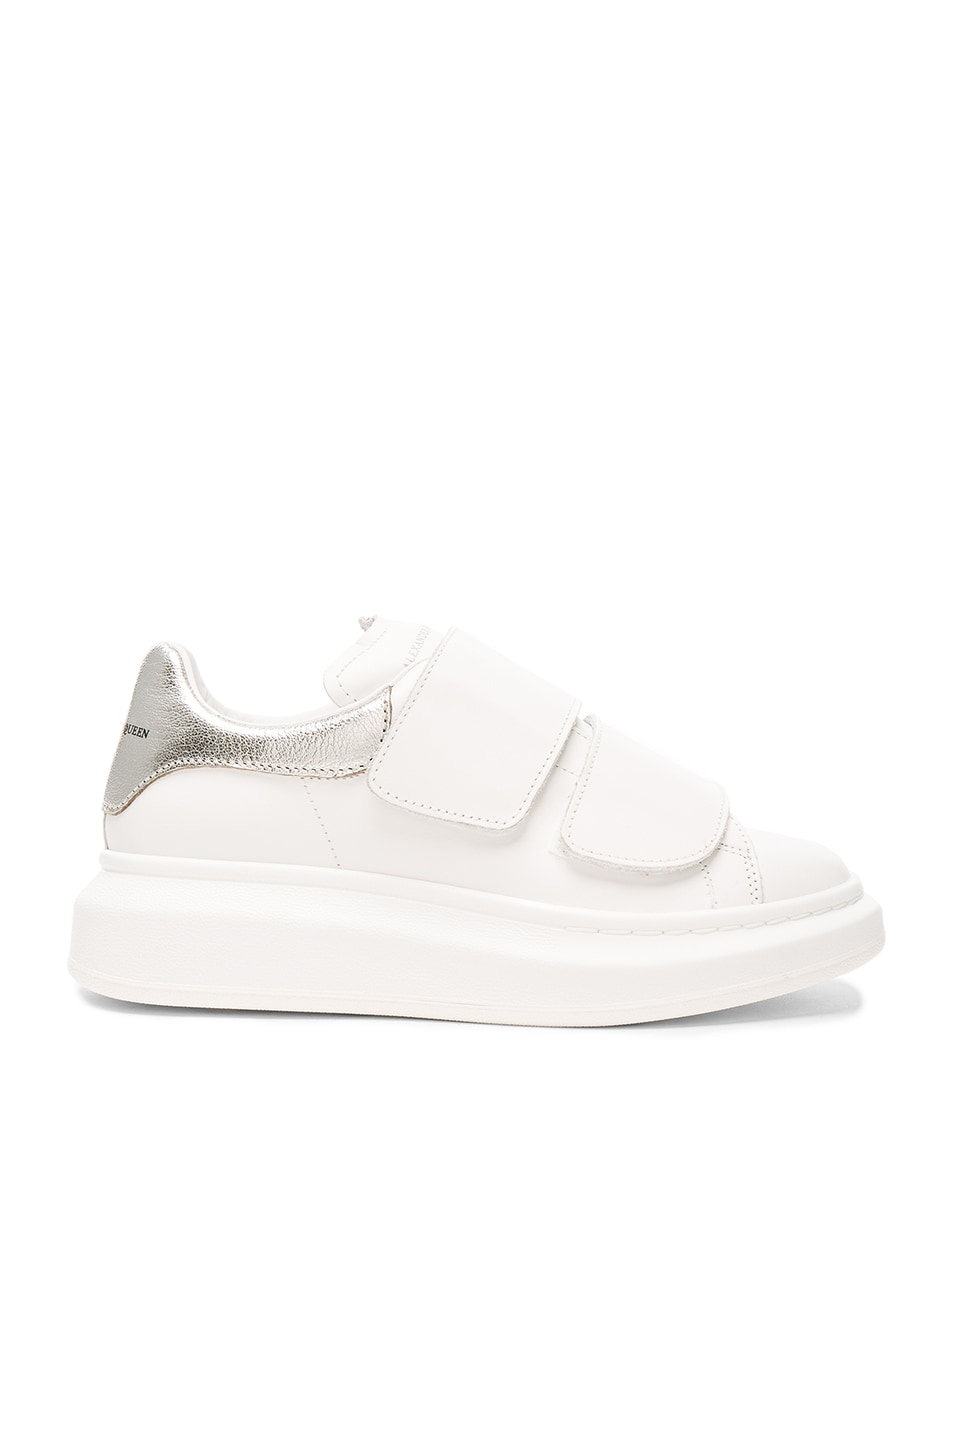 49940773b16f Image 1 of Alexander McQueen Leather Velcro Platform Sneakers in White    Silver